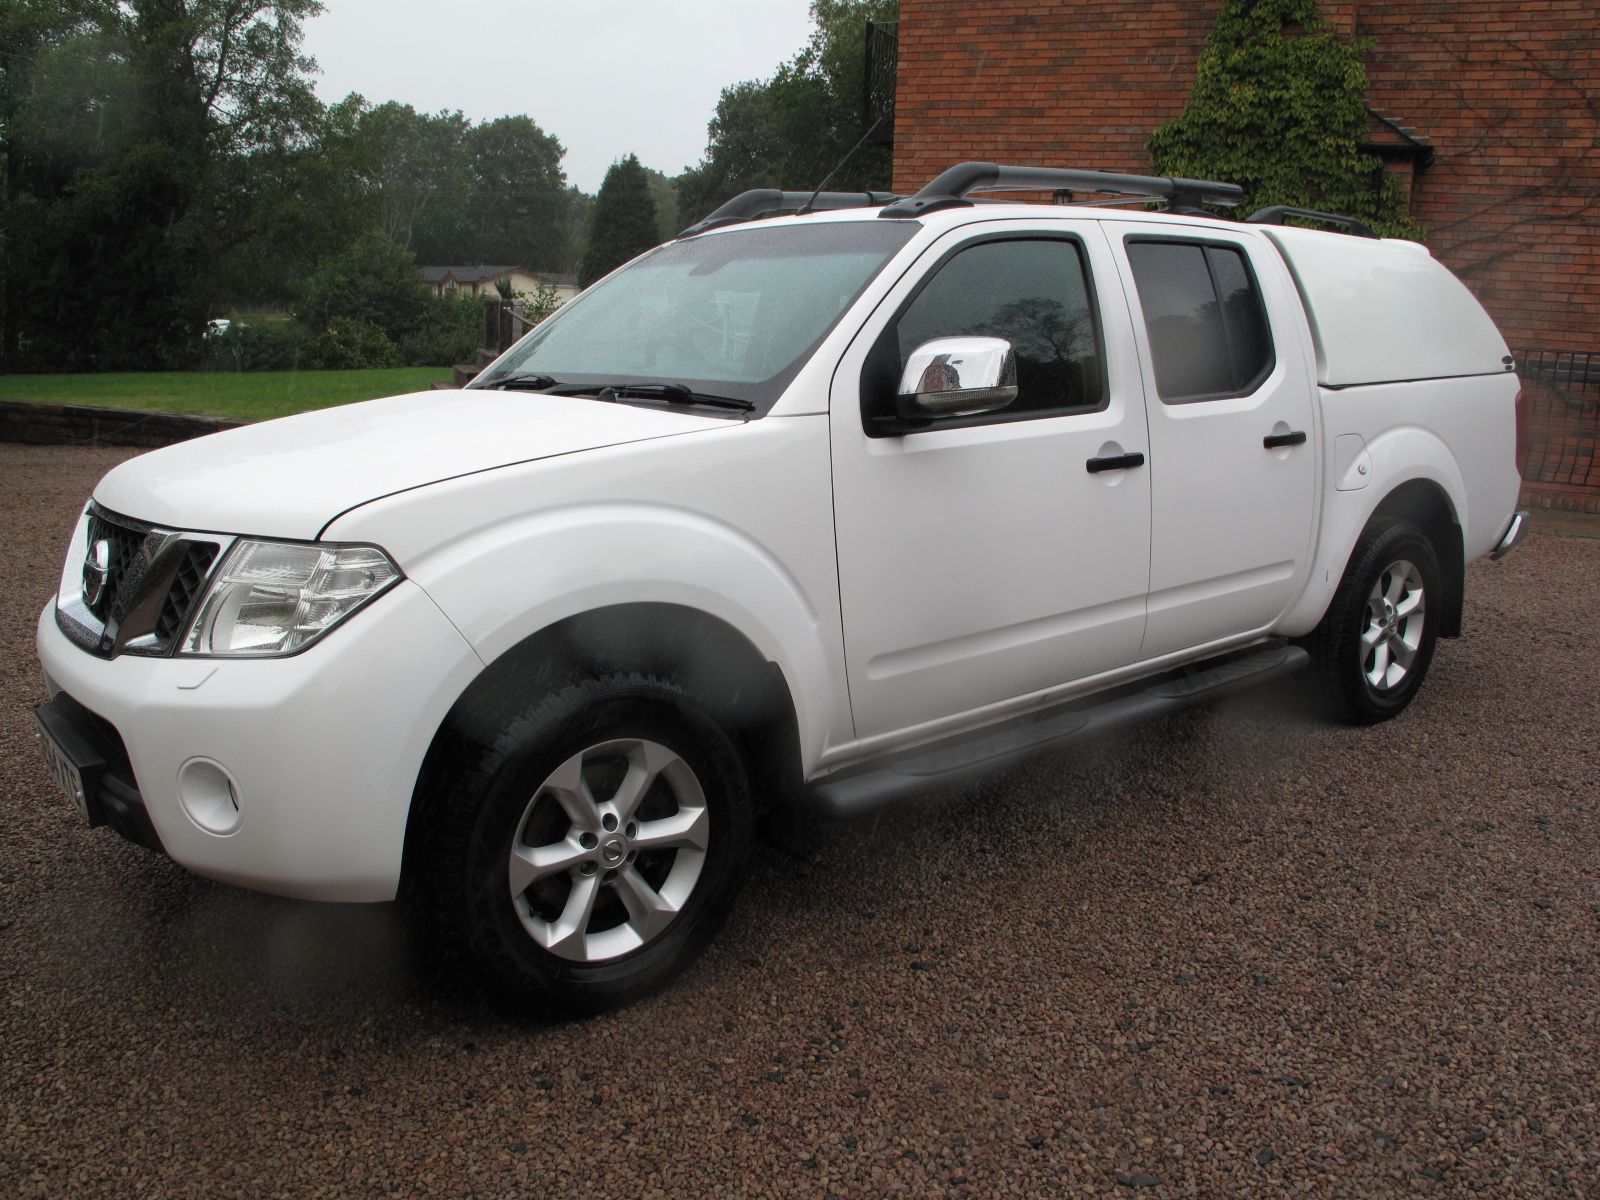 2014 64 Nissan Navara 2.5 dCi Tekna Double Cab Pickup 4WD 4dr TOP OF THE RANGE ABSOLUTELY IMMACULATE CONDITION! NO VAT! full